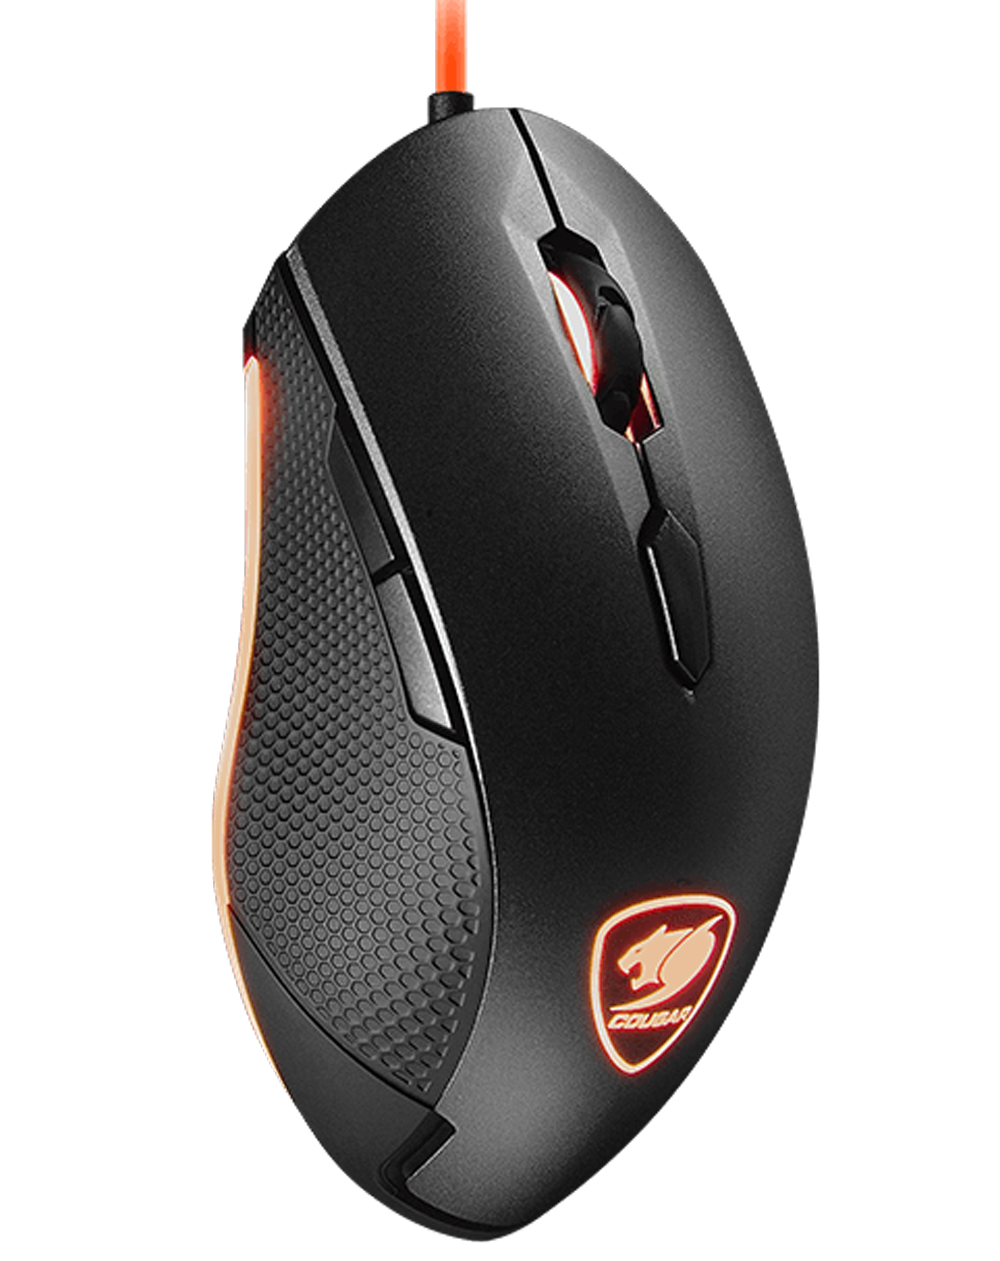 Cougar Minos X2 eSport Optical Gaming Mouse